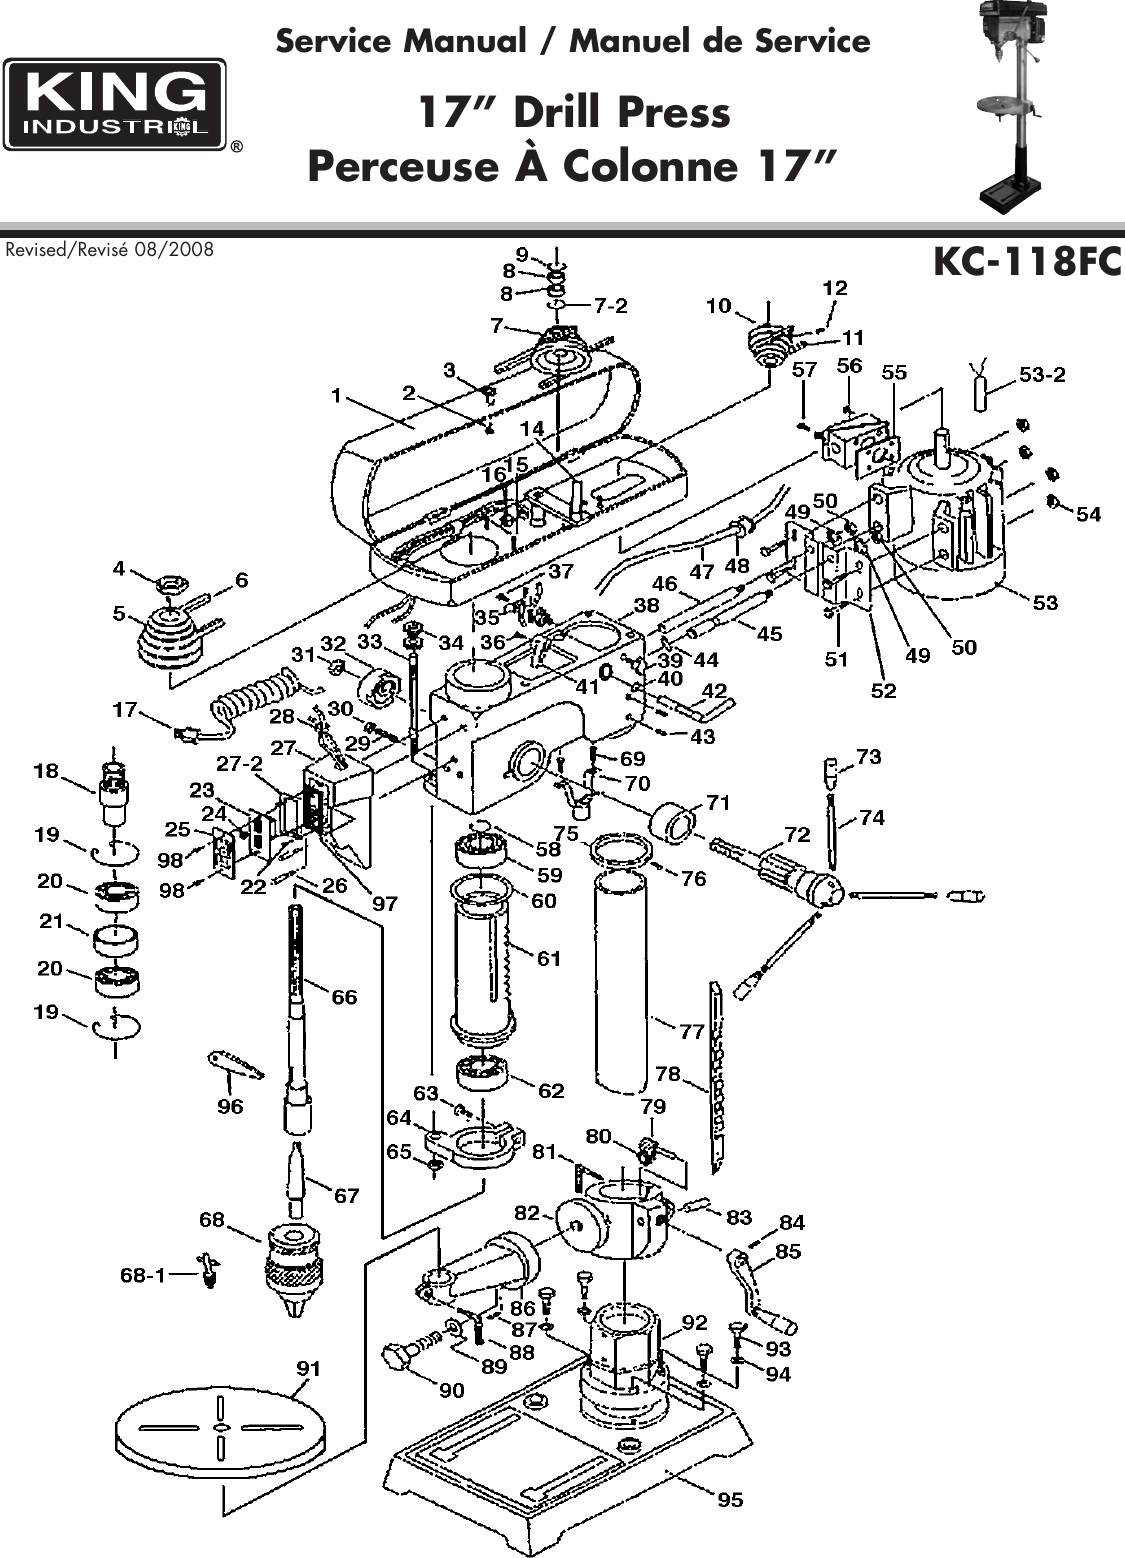 King Canada Kc 118Fc Service Manual ManualsLib Makes It